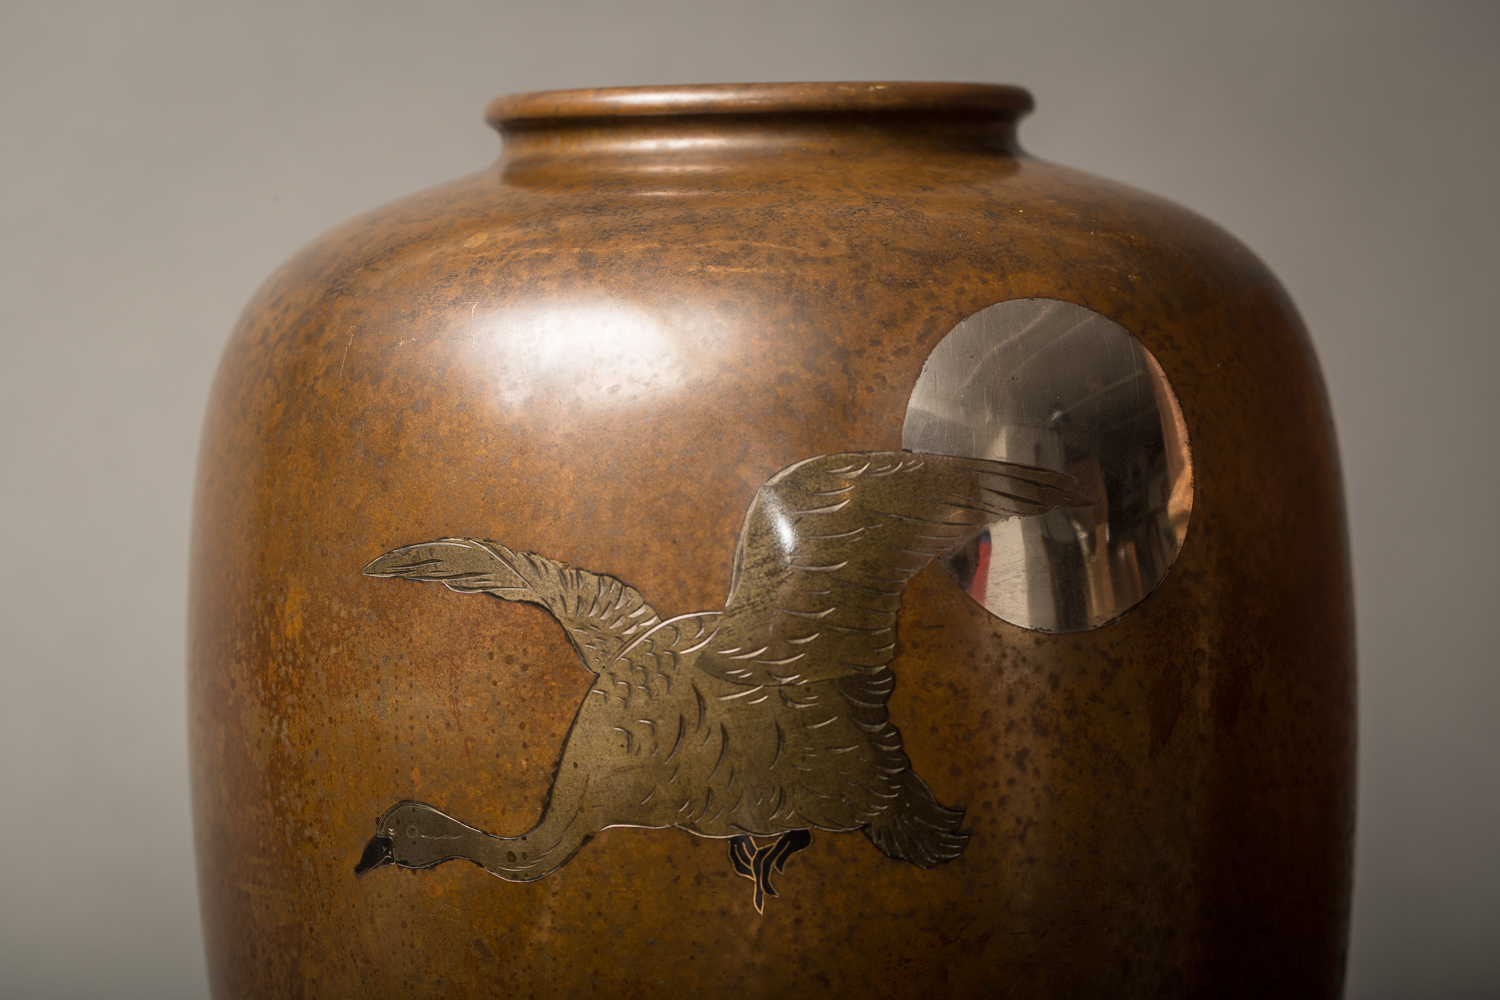 Japanese Meiji Bronze Takaoka Vase With Waterfowl and Moon Design